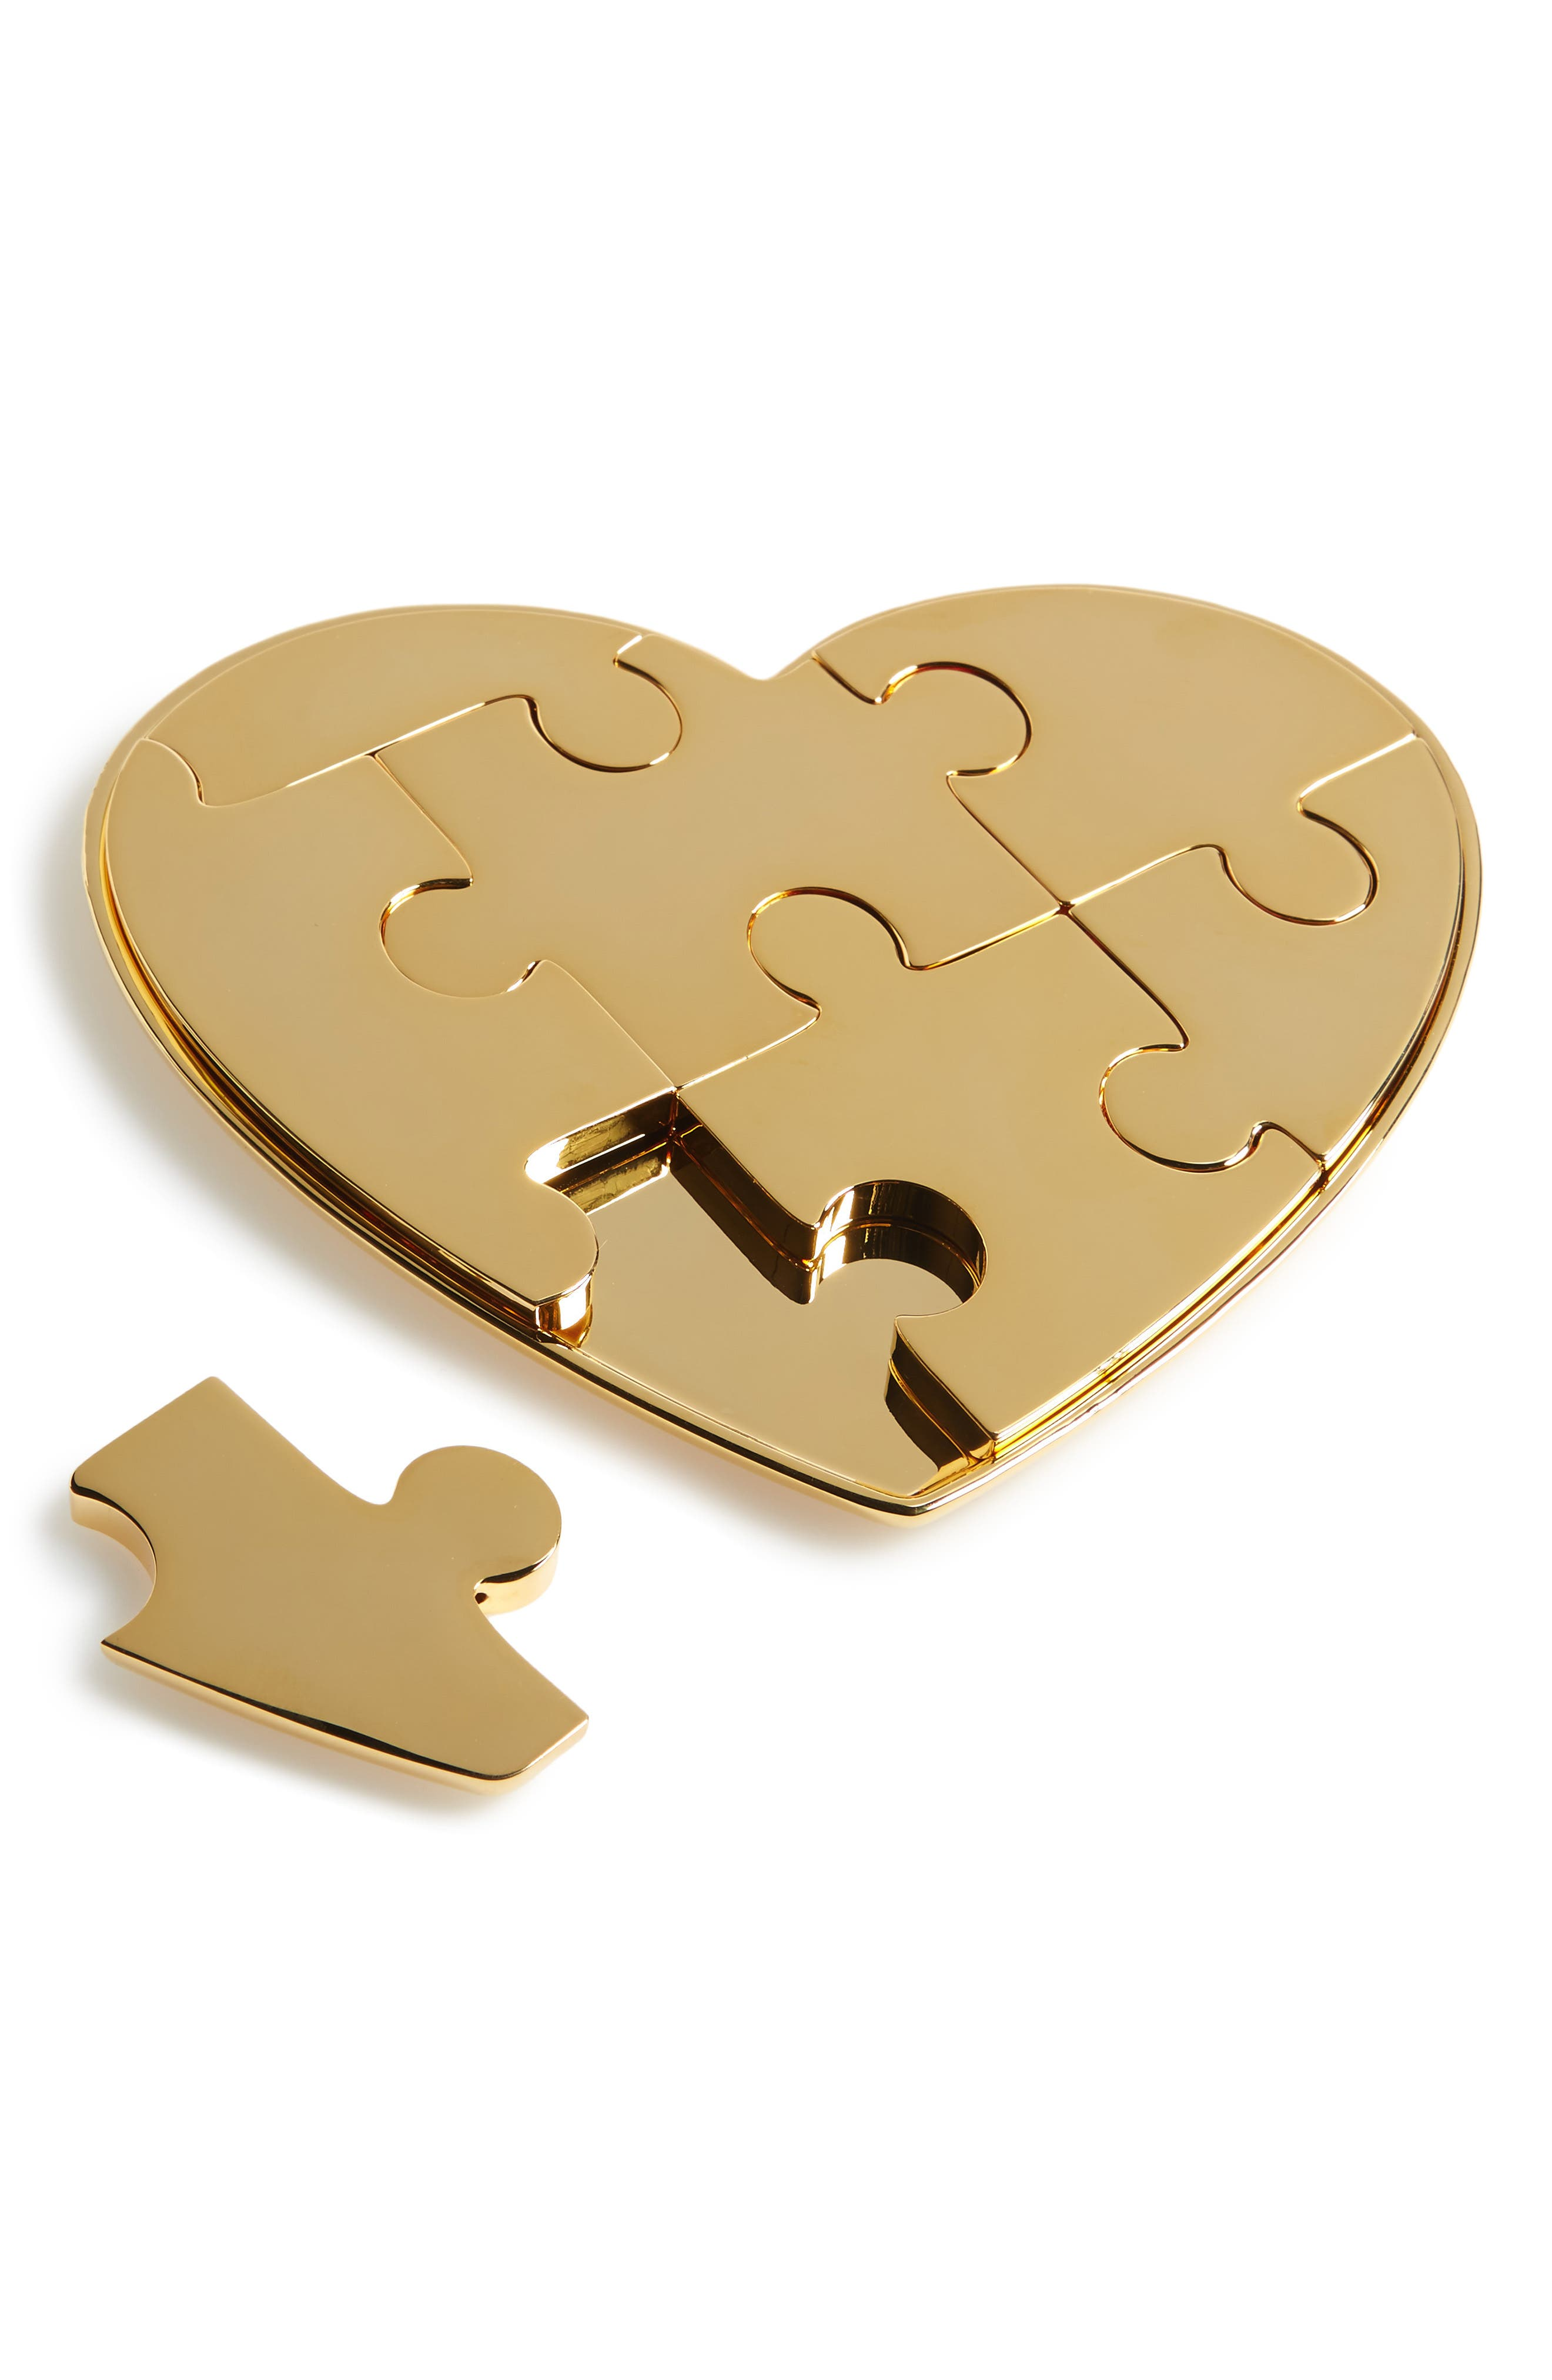 Heart Jigsaw Puzzle,                         Main,                         color, Metallic Gold